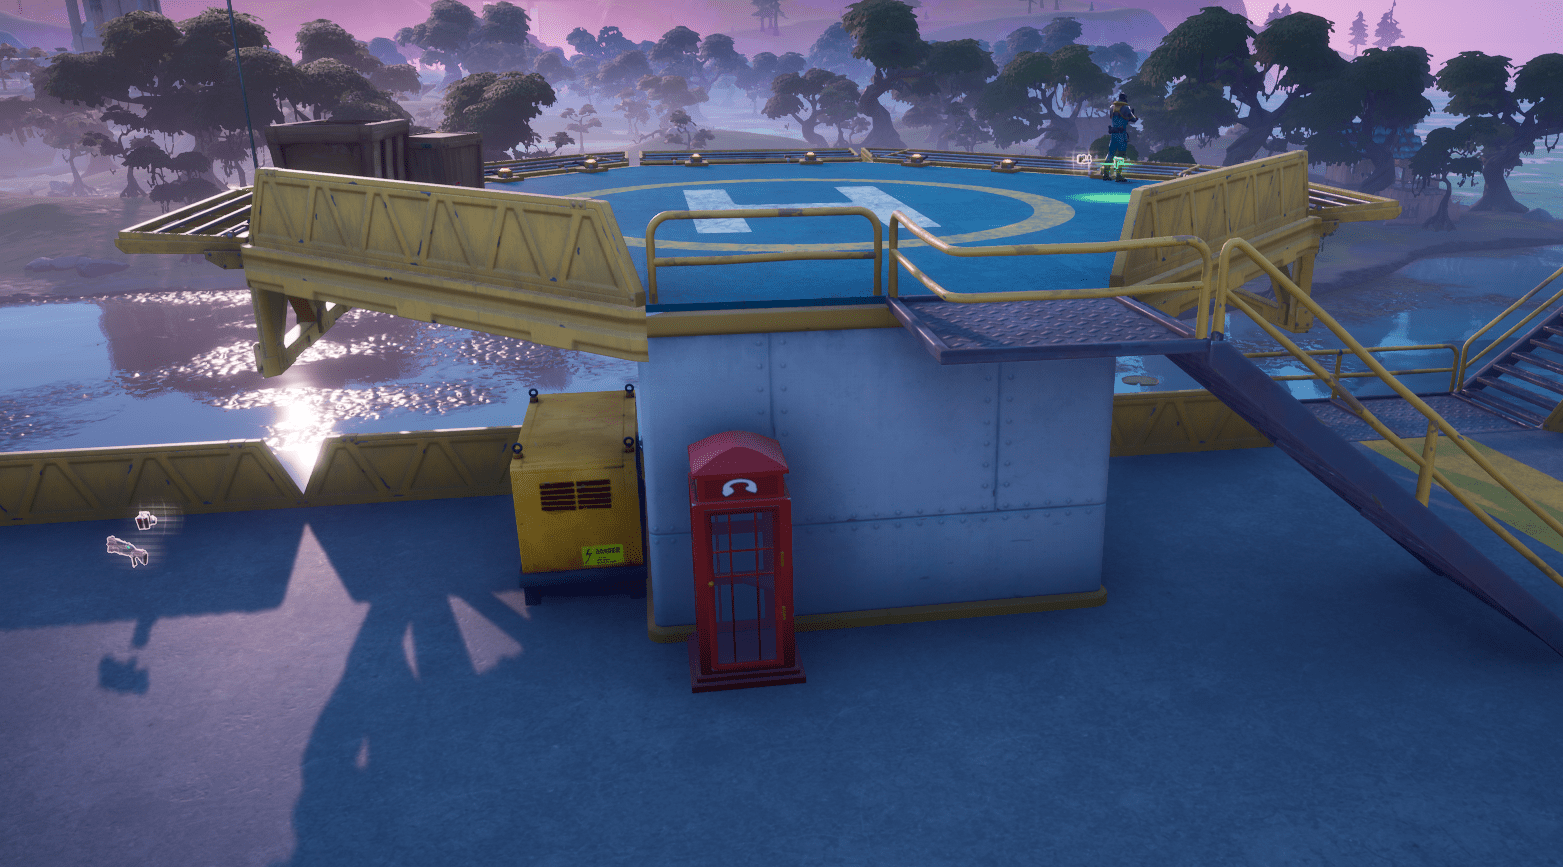 Fortnite Phone Booth Locations - The Rig 1